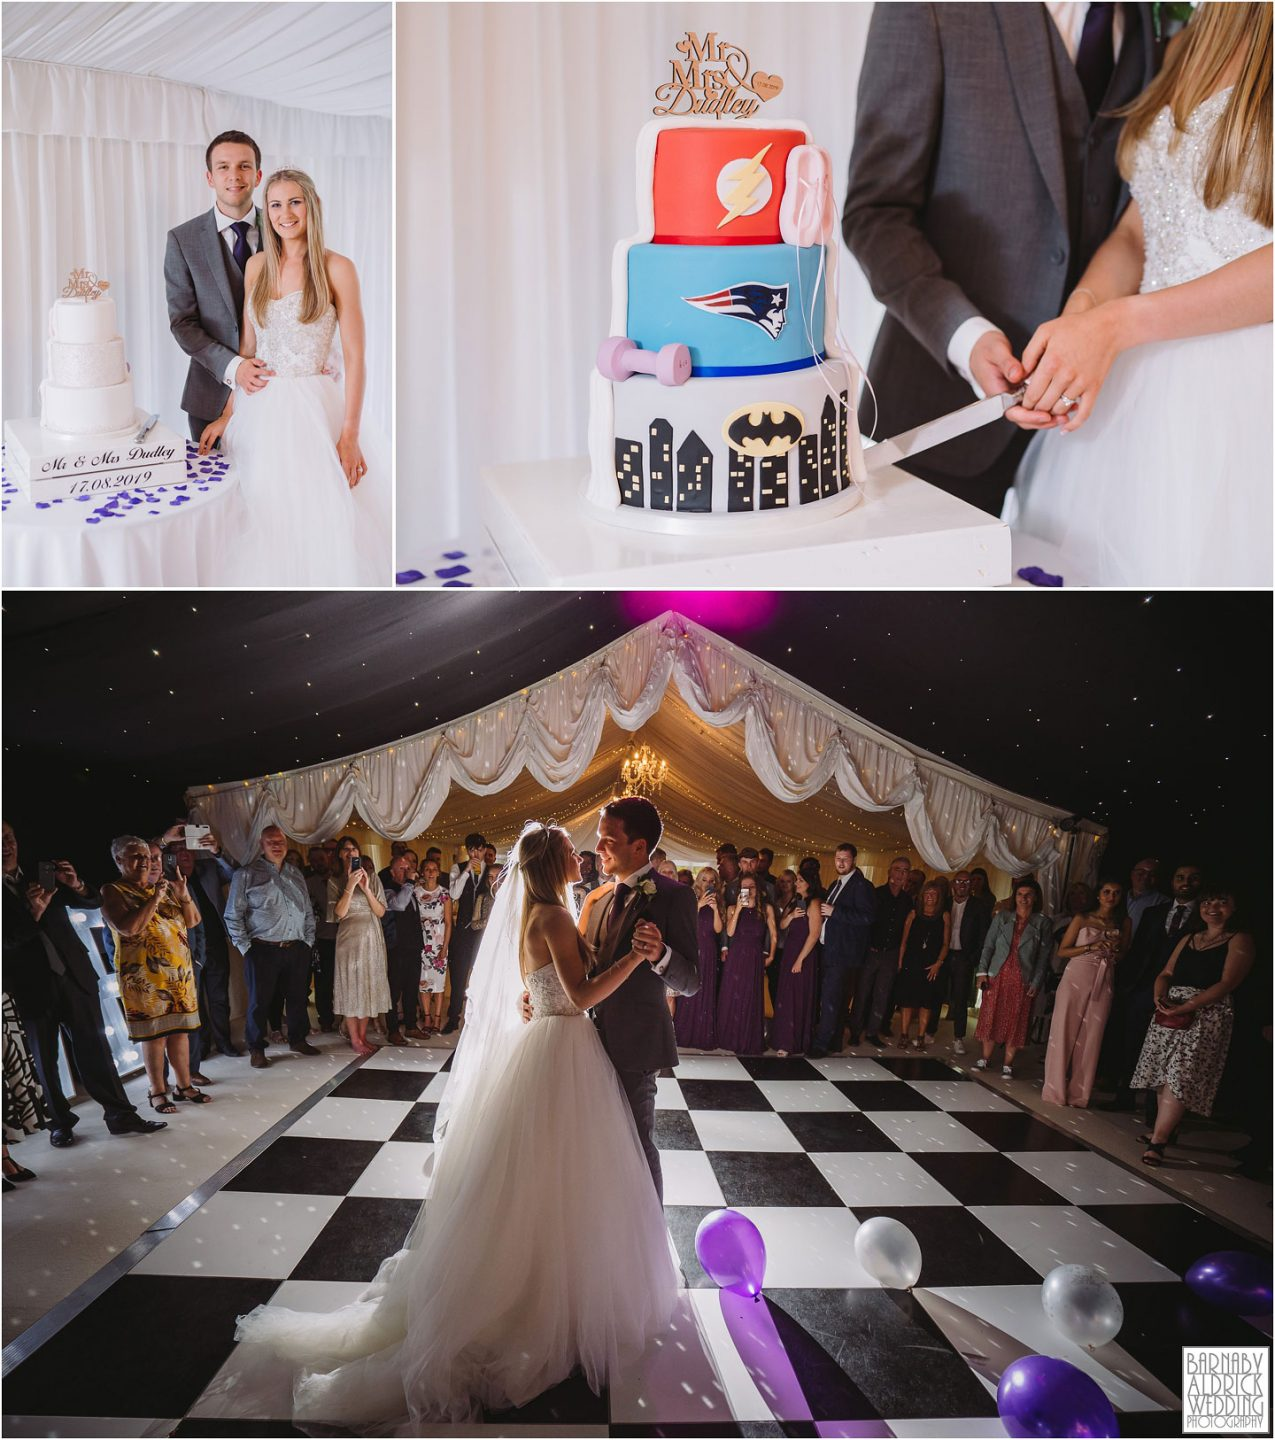 Superhero wedding cake cut, First Dance at Priory Cottages in Yorkshire, Wedding photos at Priory Cottages, The Priory Yorkshire